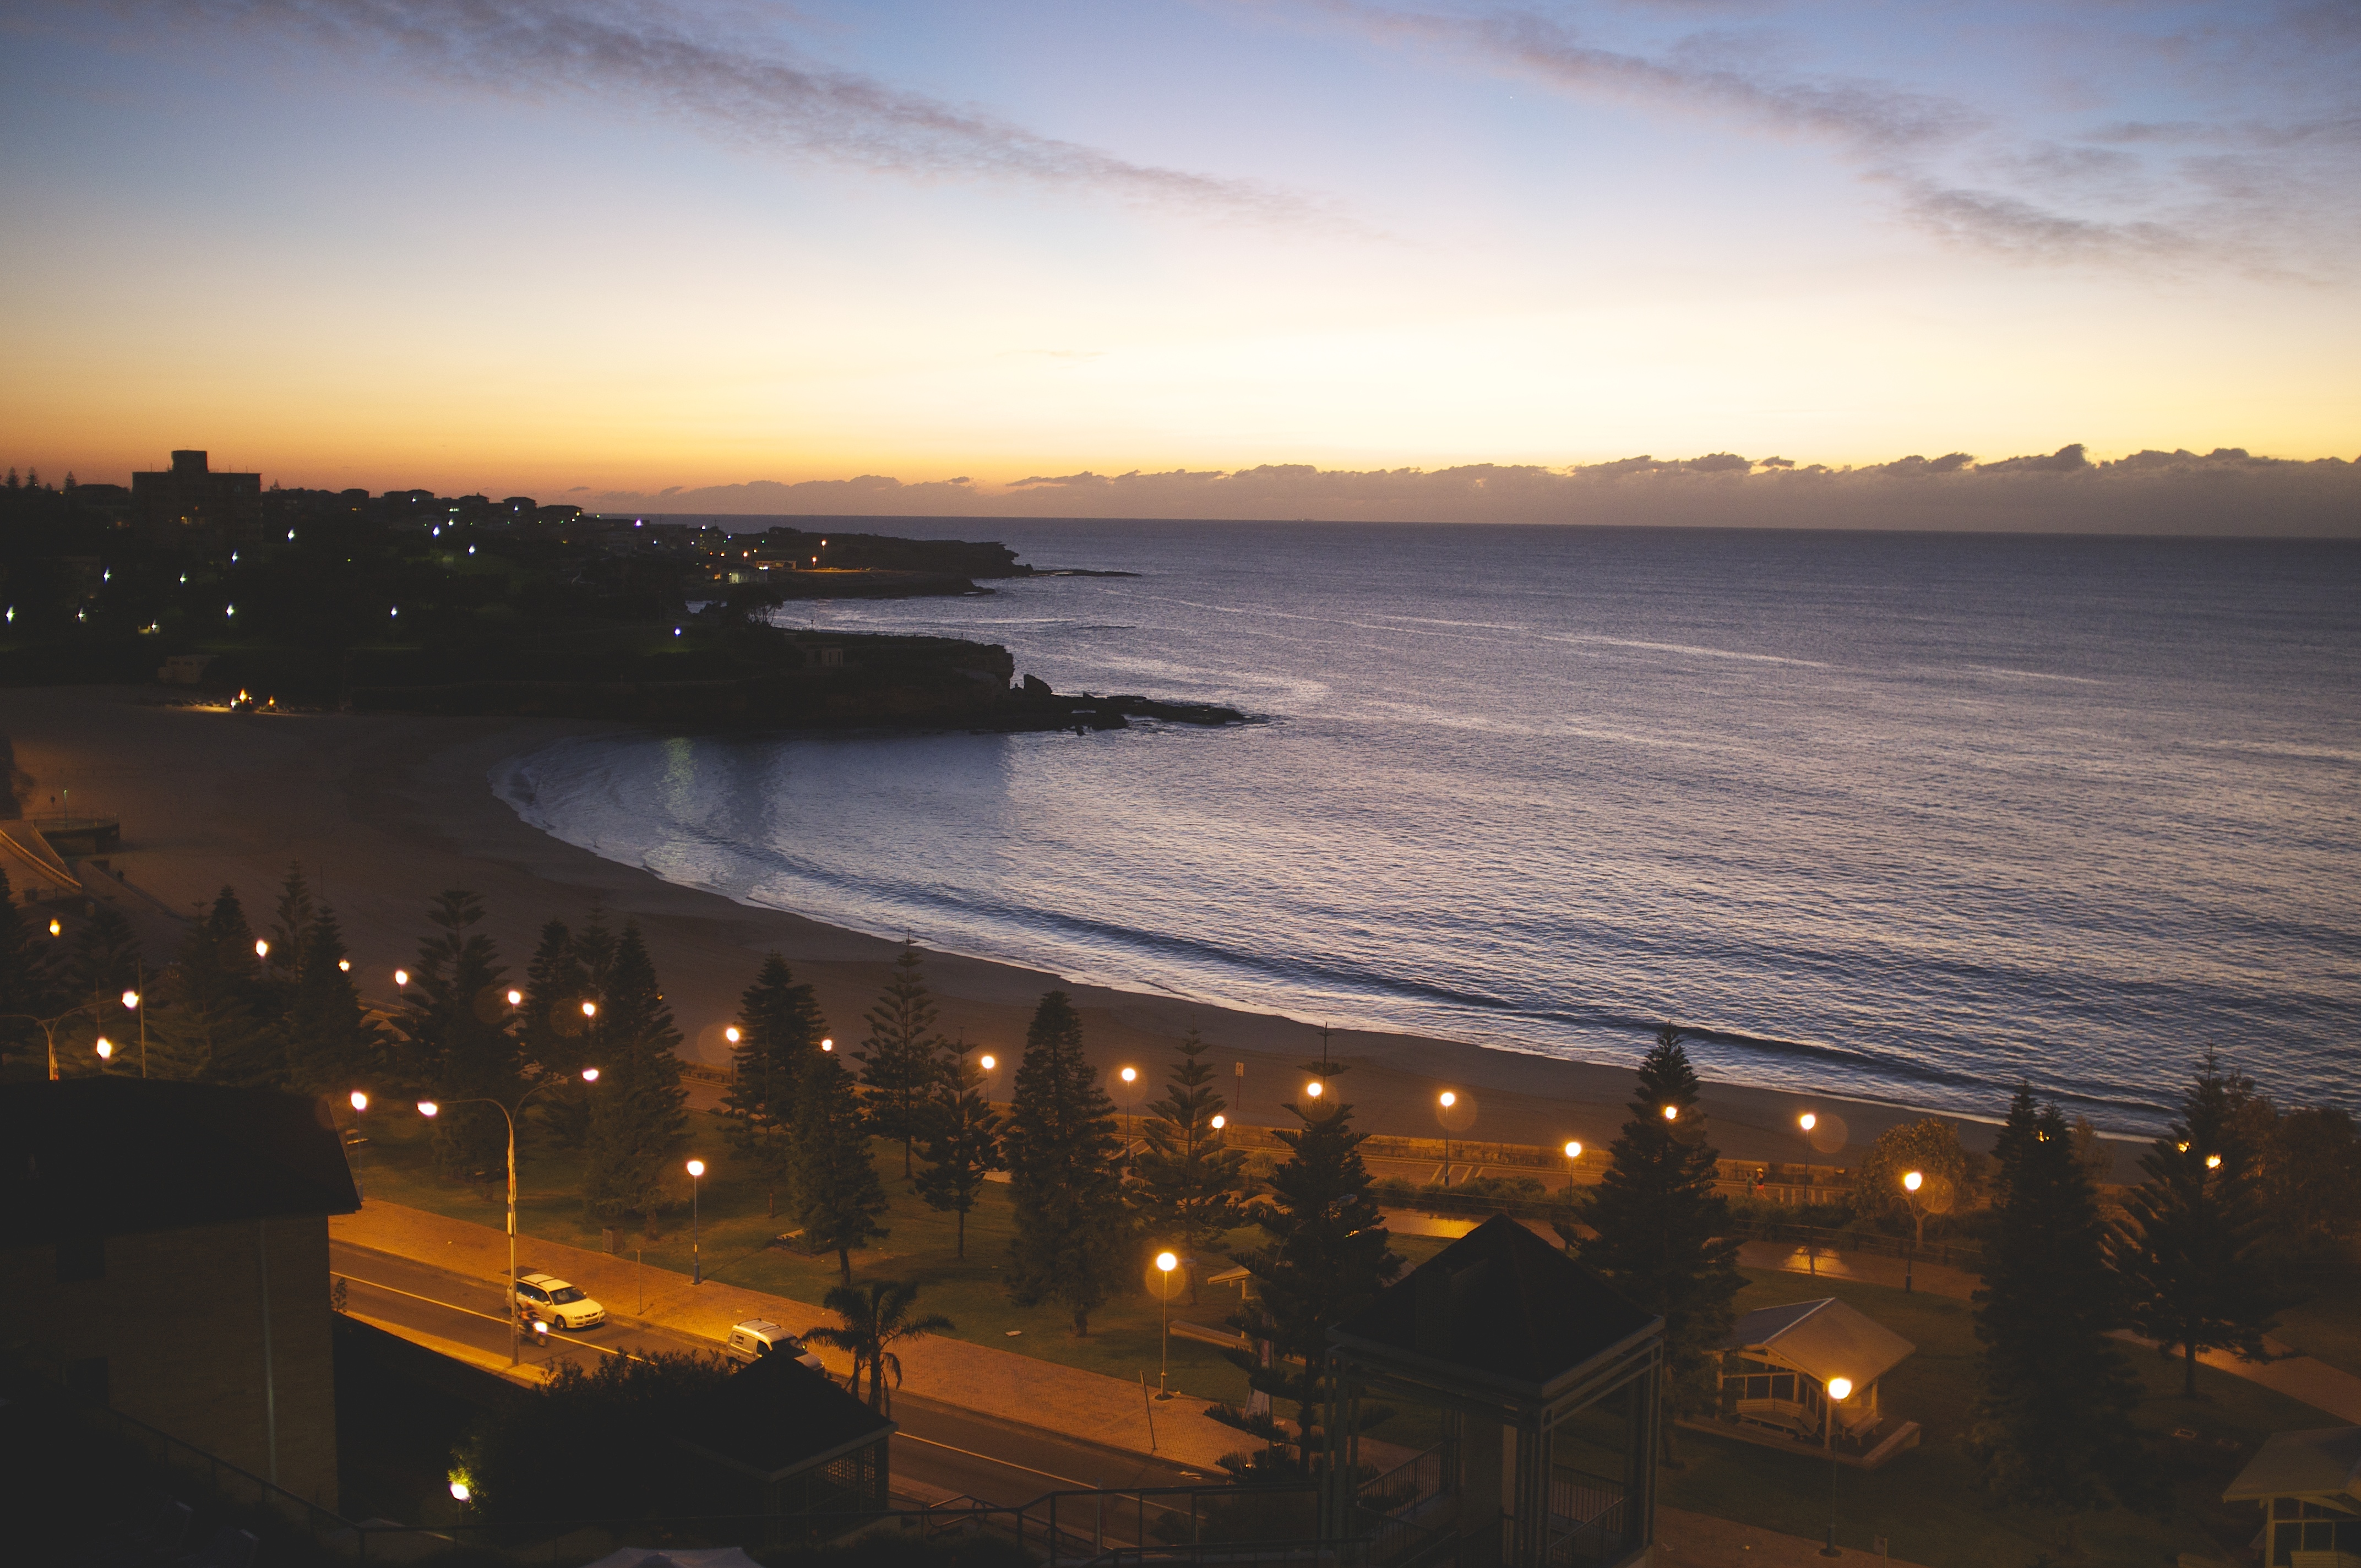 Dawn at Coogee Beach by By Dion Hinchcliffe (Flickr: Dawn in Coogee Beach) [CC-BY-SA-2.0 (http://creativecommons.org/licenses/by-sa/2.0)], via Wikimedia Commons